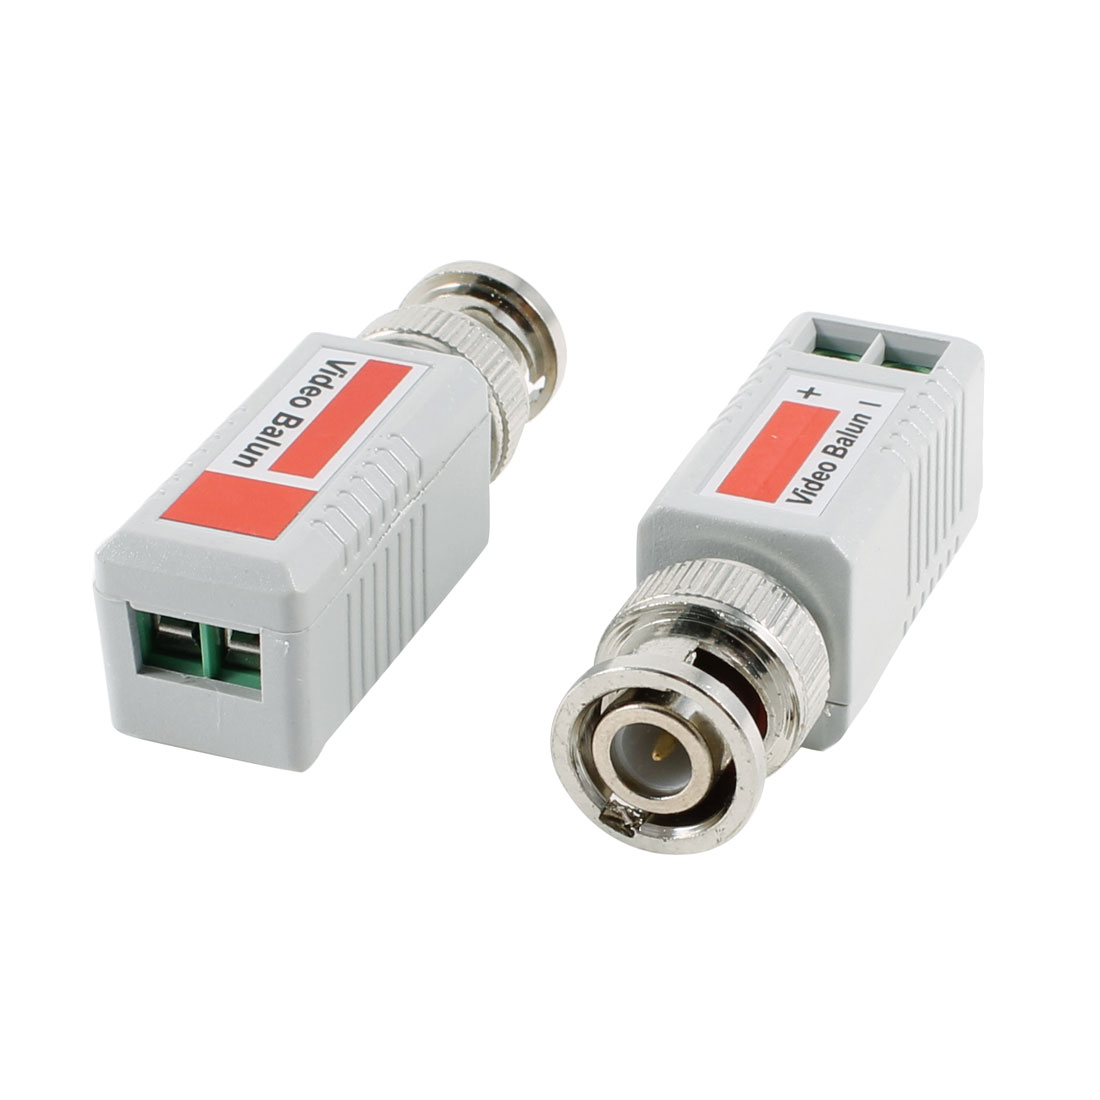 Pair Camera CCTV BNC CAT5 Video Balun Passive Transceiver Adapter Connector 202E